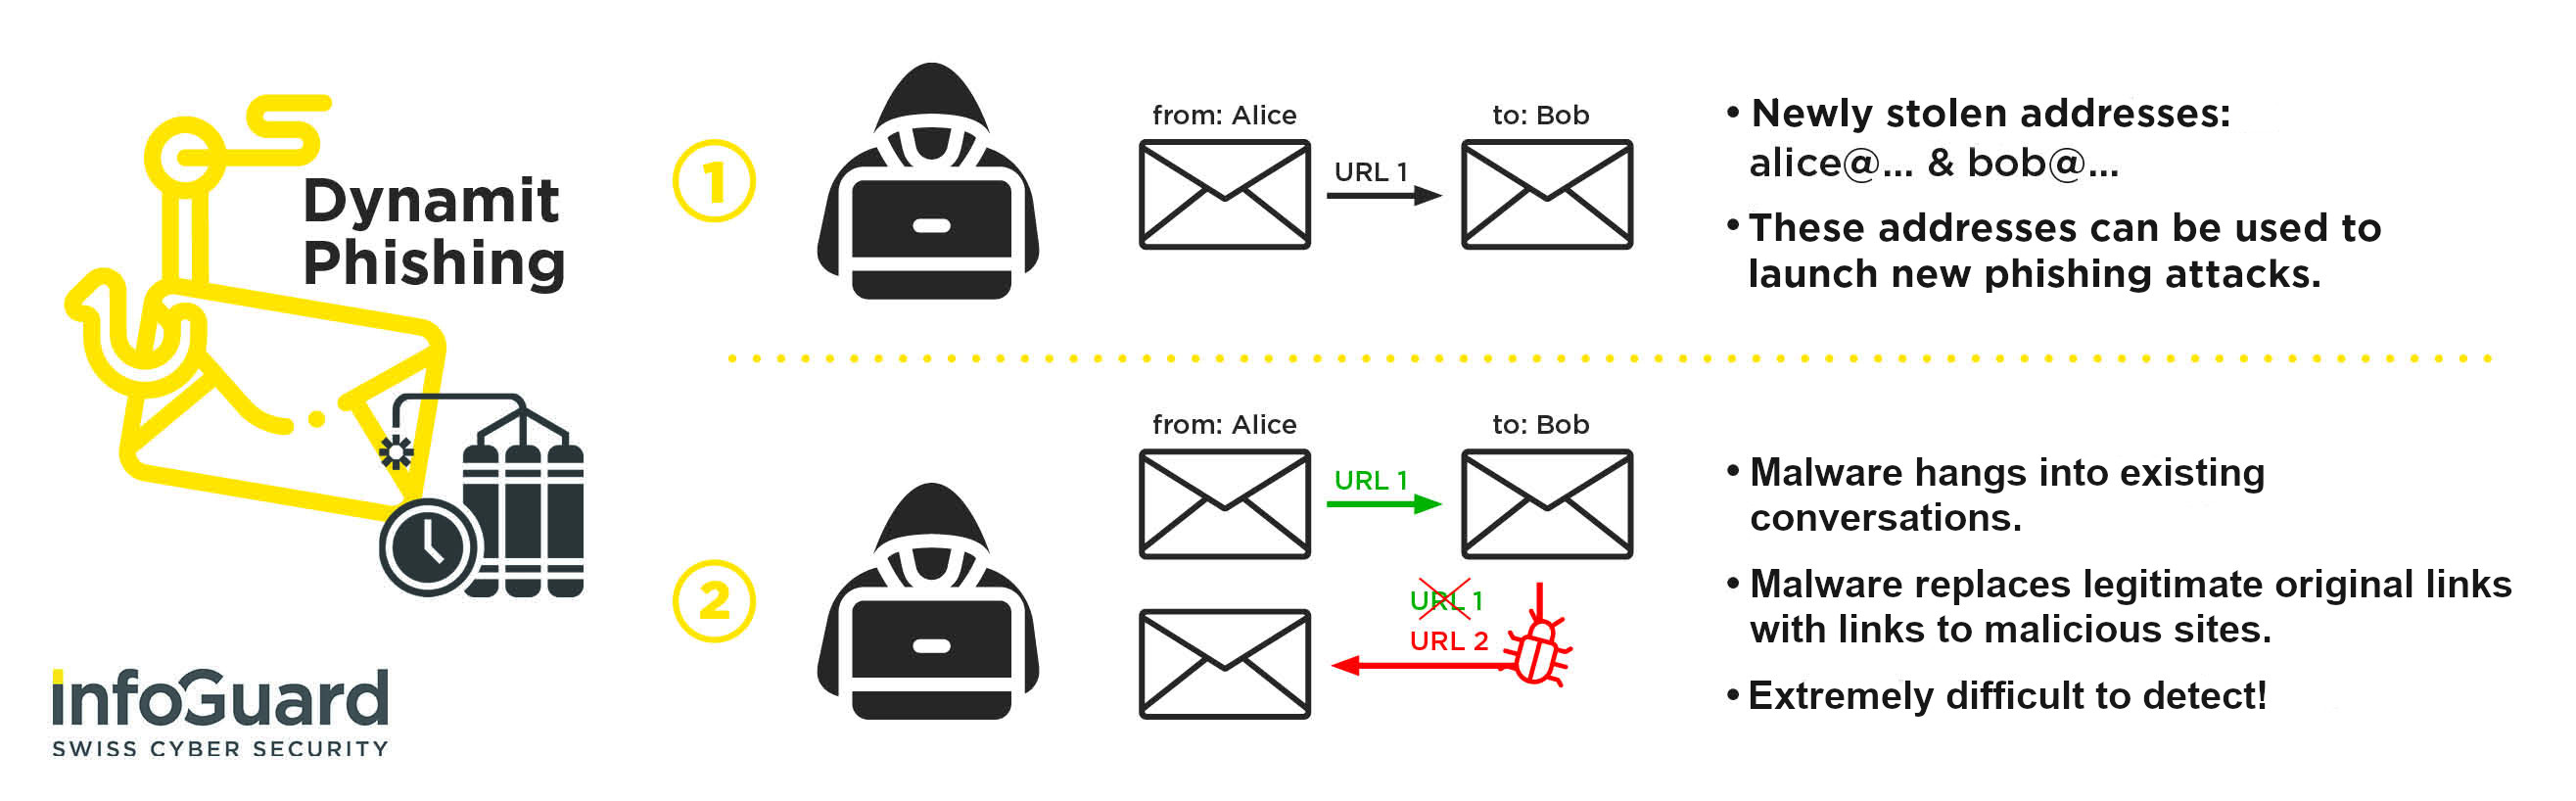 Dynamite Phishing ‒ Emotet can forge e-mails almost perfectly